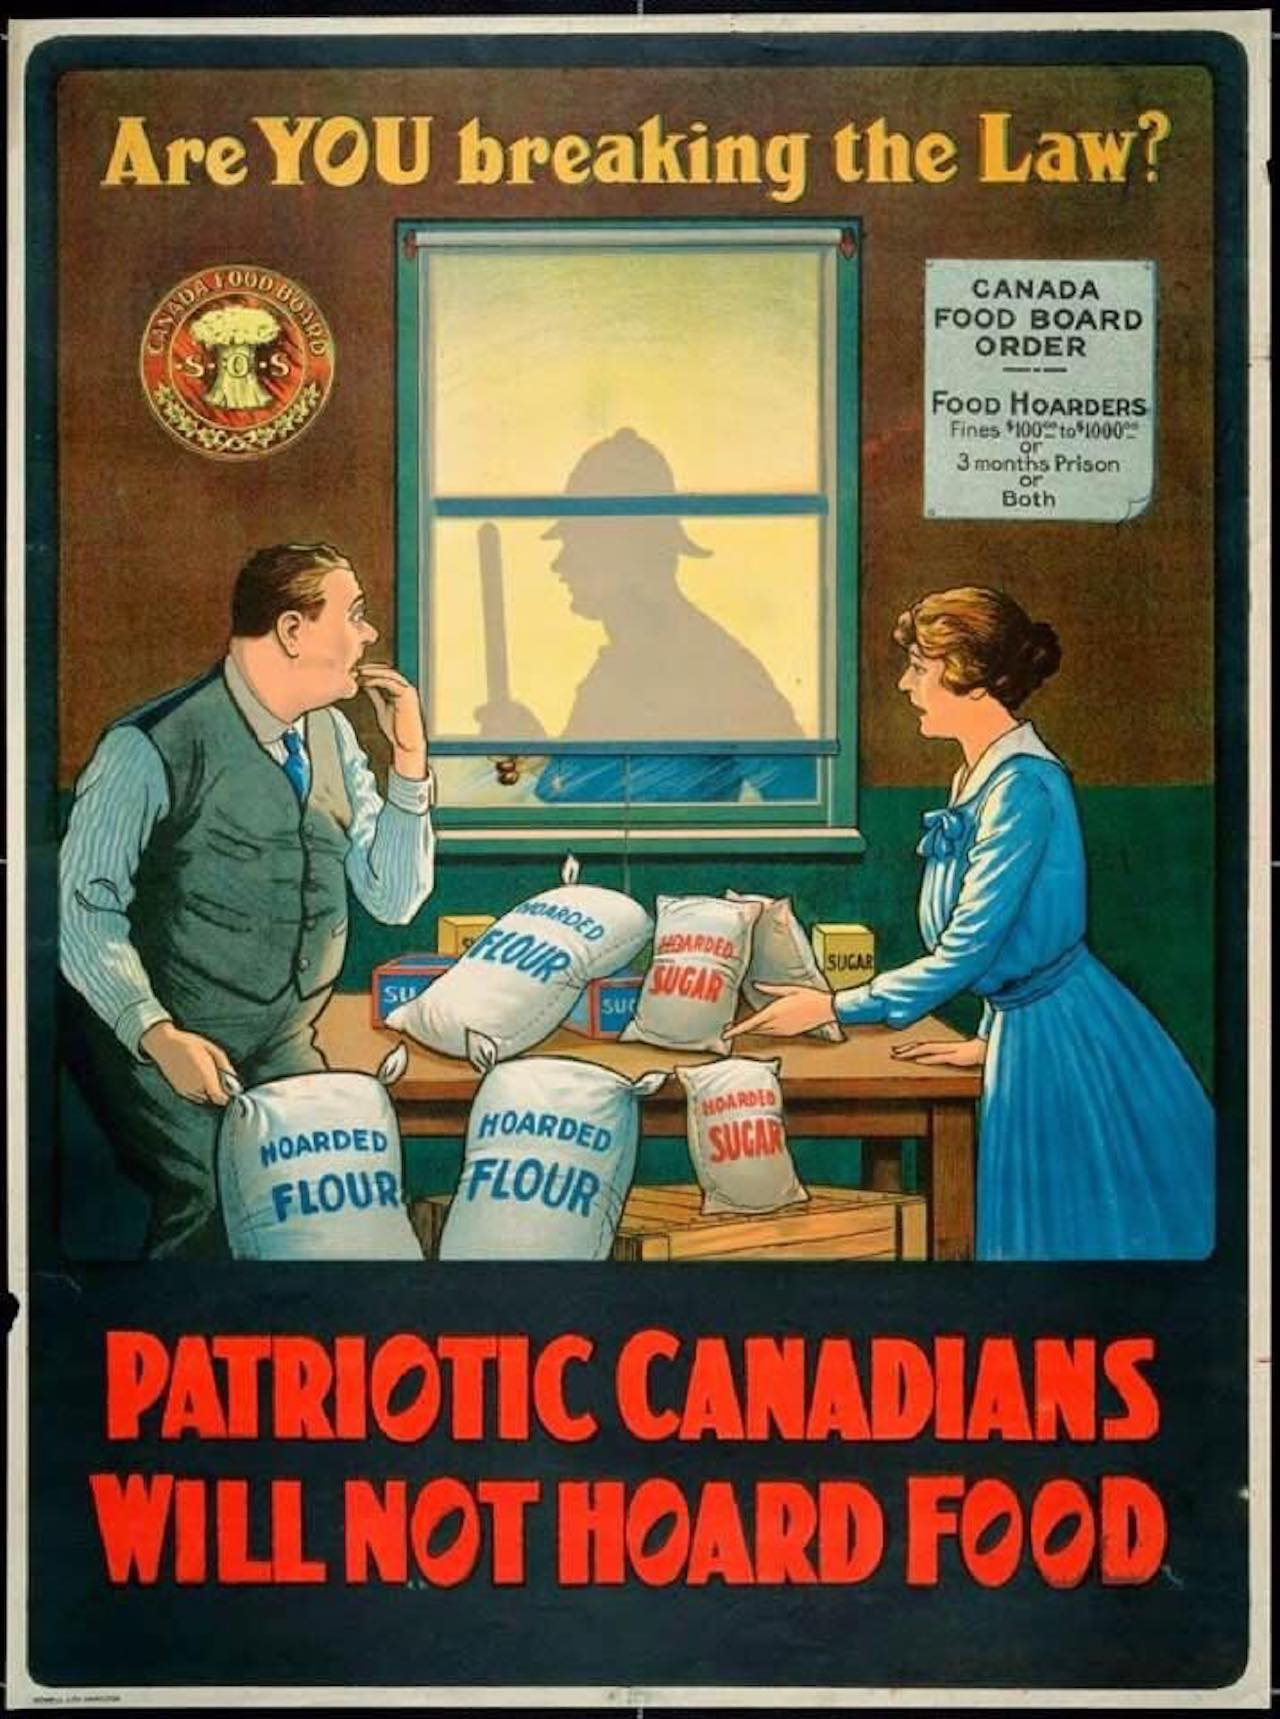 1918 poster from the Canada Food Board